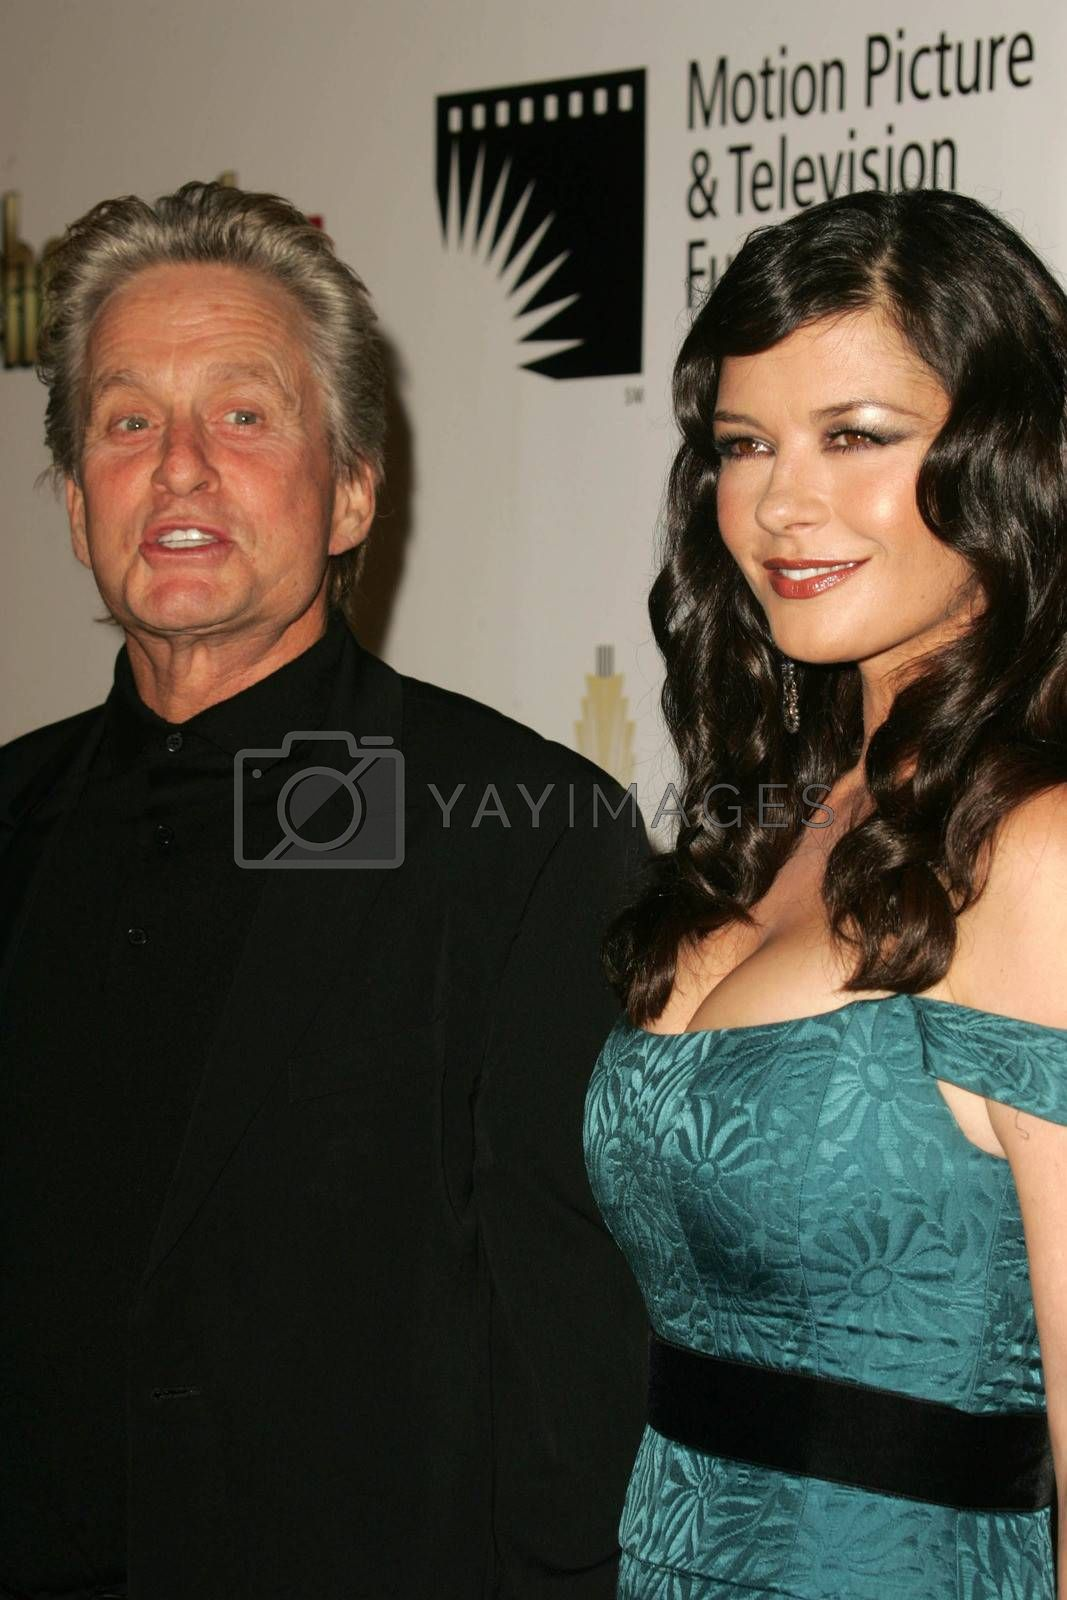 Michael Douglas and Catherine Zeta Jones at the 2nd Annual A Fine Romance, Hollywood and Broadway Musical Fundraiser. Sunset Gower Studios, Hollywood, CA. 11-18-06